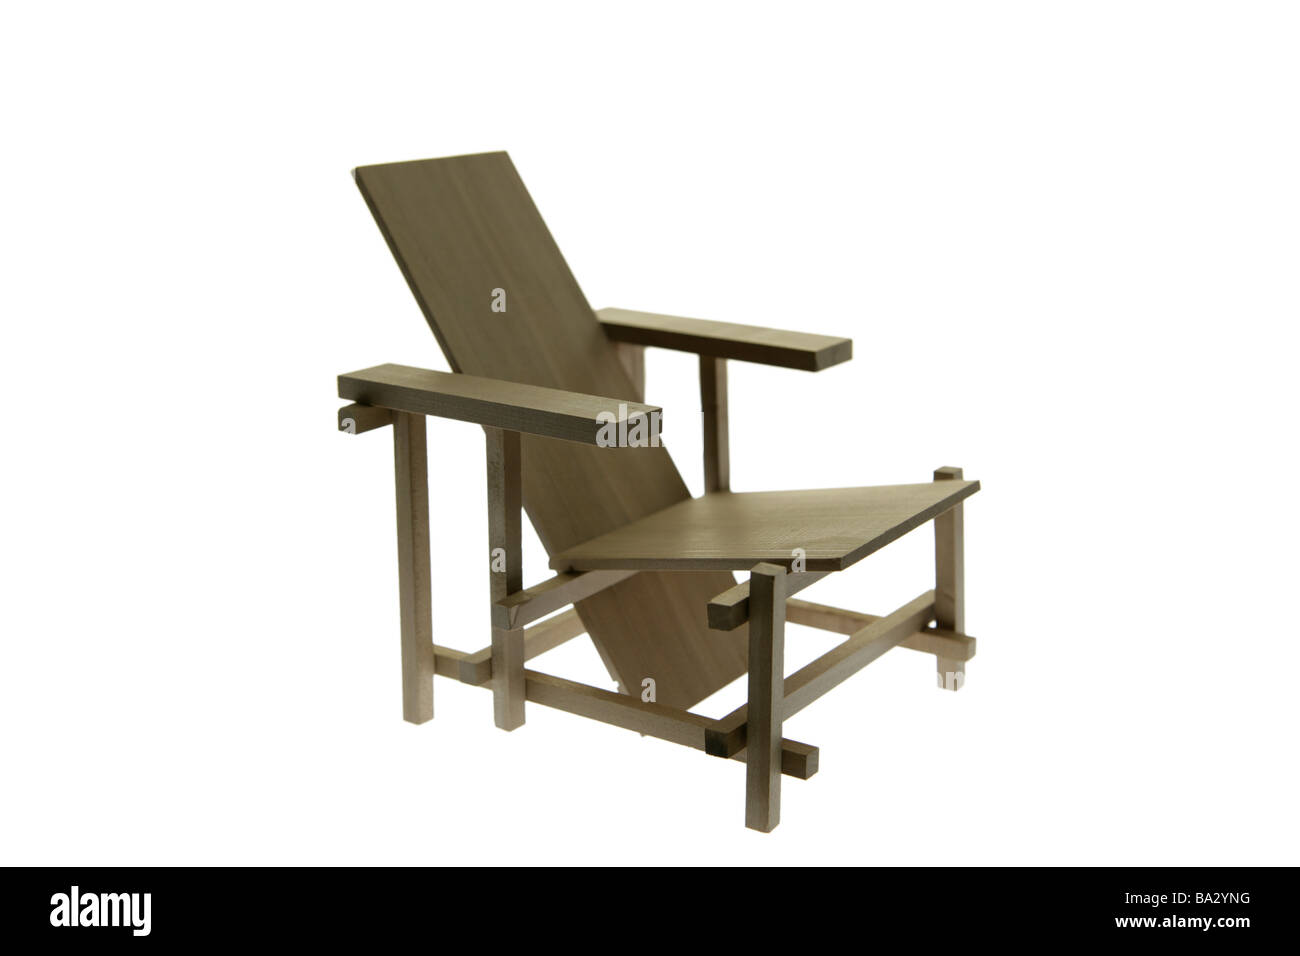 Wooden chairs design classics - Stock Photo Wood Chair Bauhaus Chair Bauhaus Style Style Design Classic Modern Time Chair Furniture Seat Furniture Wood Wooden